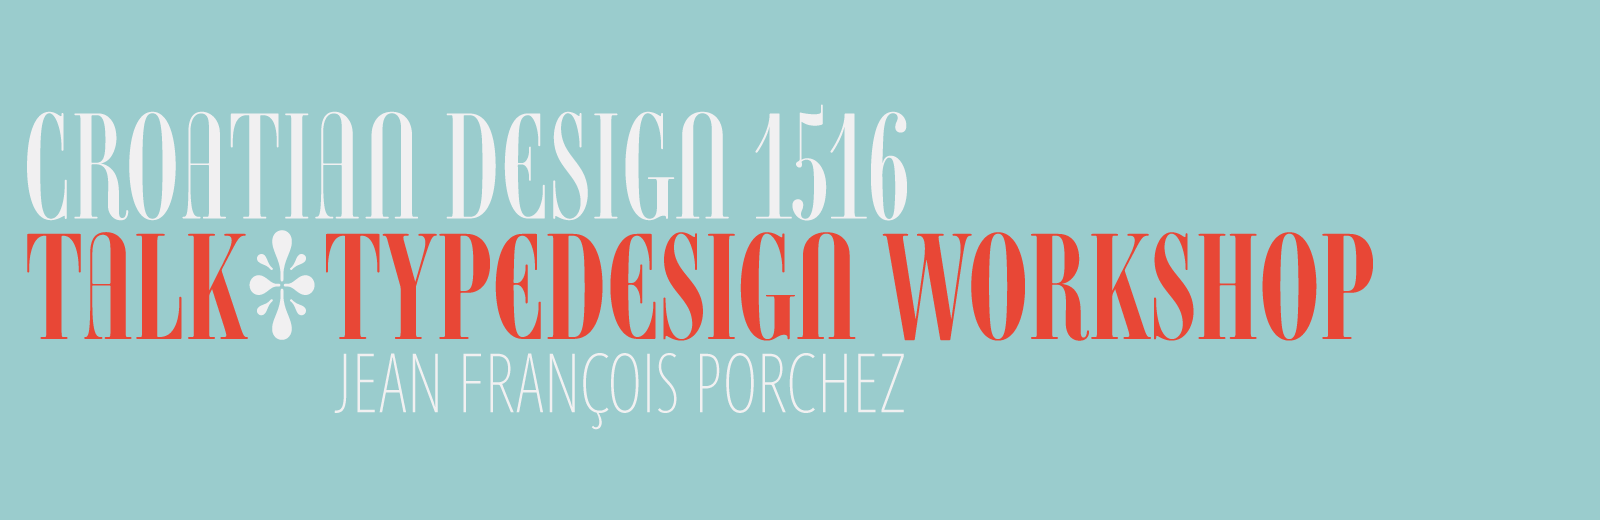 Croatian design 1516: Jean François Porchez international guest